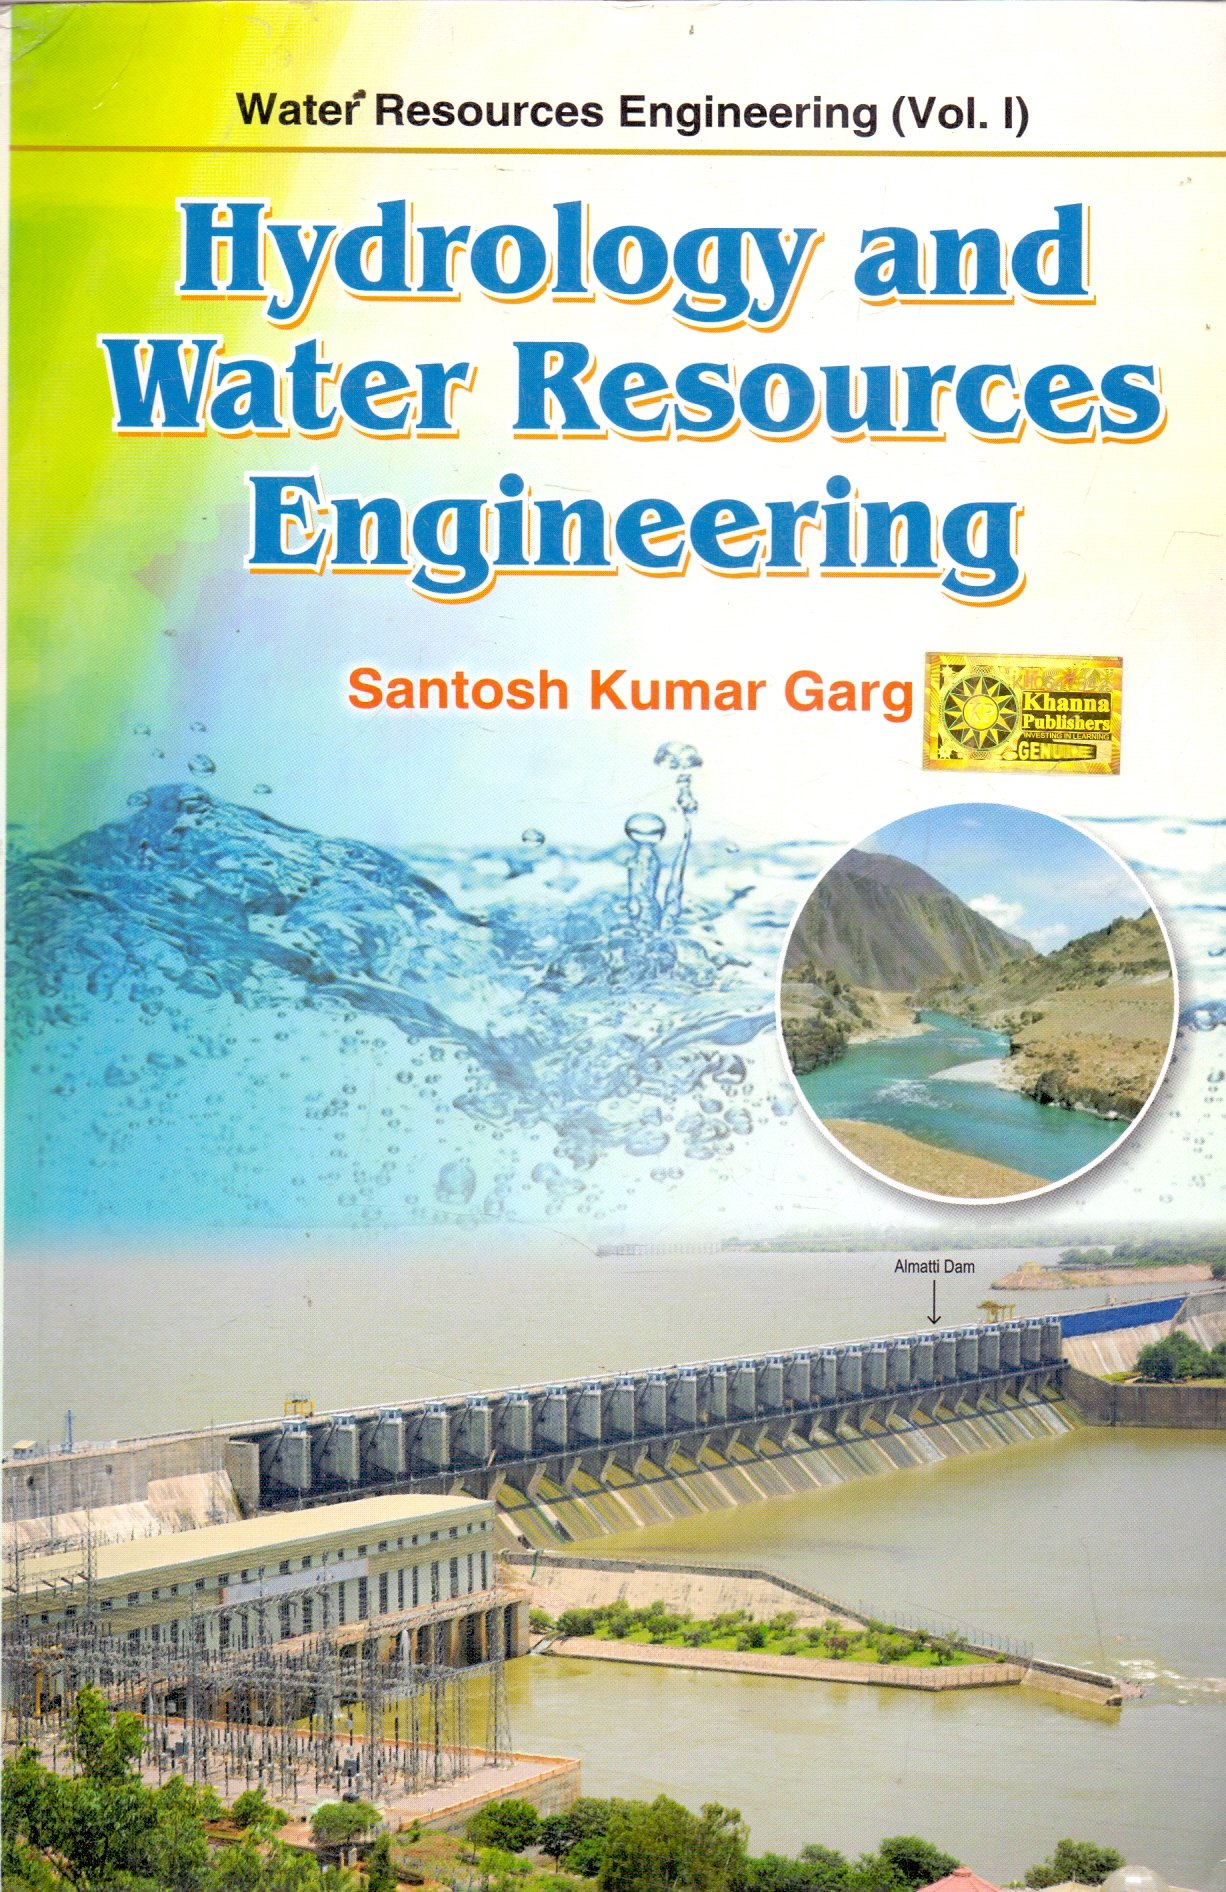 Buy Water Resources Engineering Hydrology and Water Resources Engineering - Vol.1 Book Online at Low Prices in India | Water Resources Engineering Hydrology and Water Resources Engineering - Vol.1 Reviews & Ratings - Amazon.in